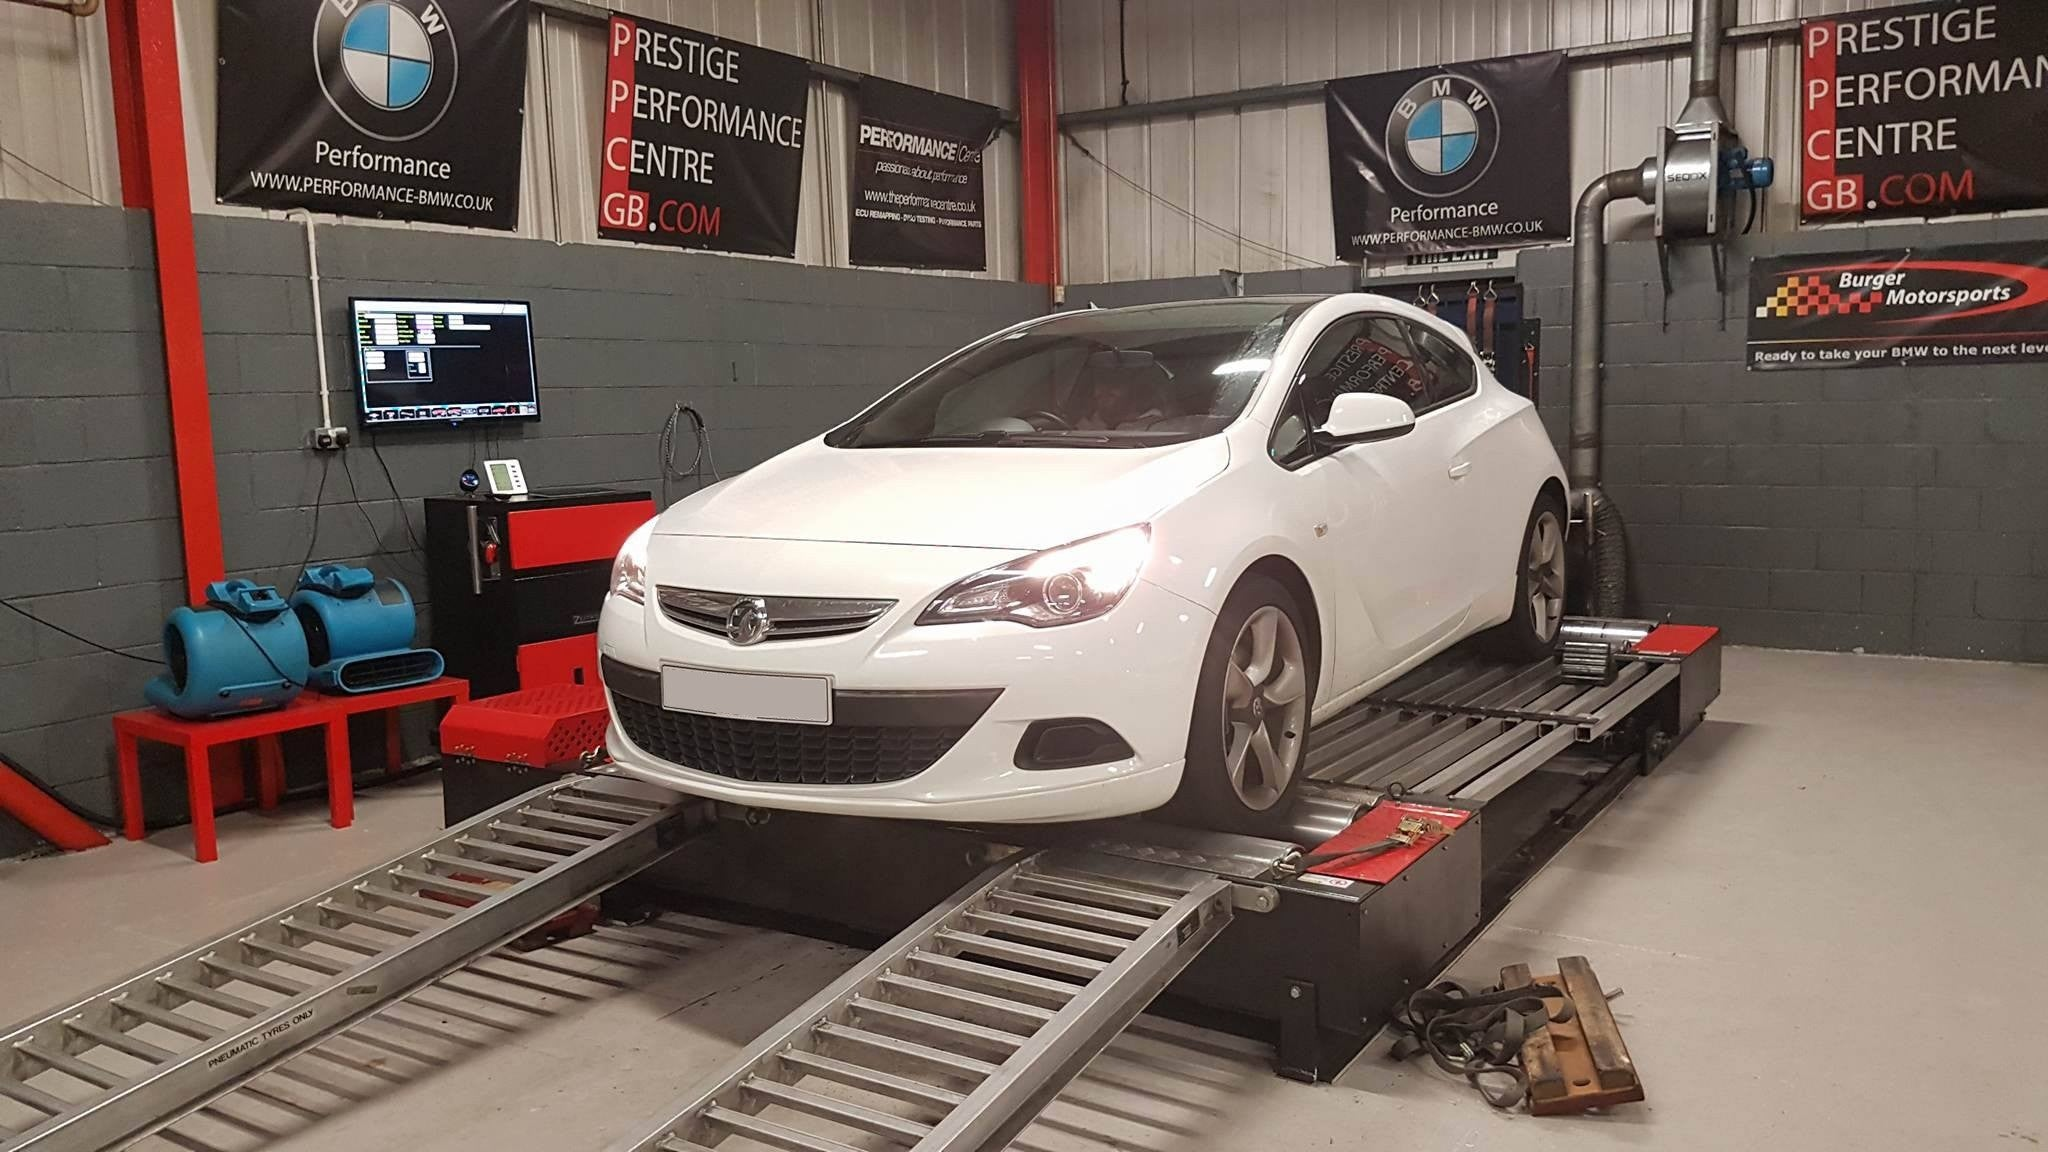 Vauxhall Astra 2.0 GTC - CustomPro remap software